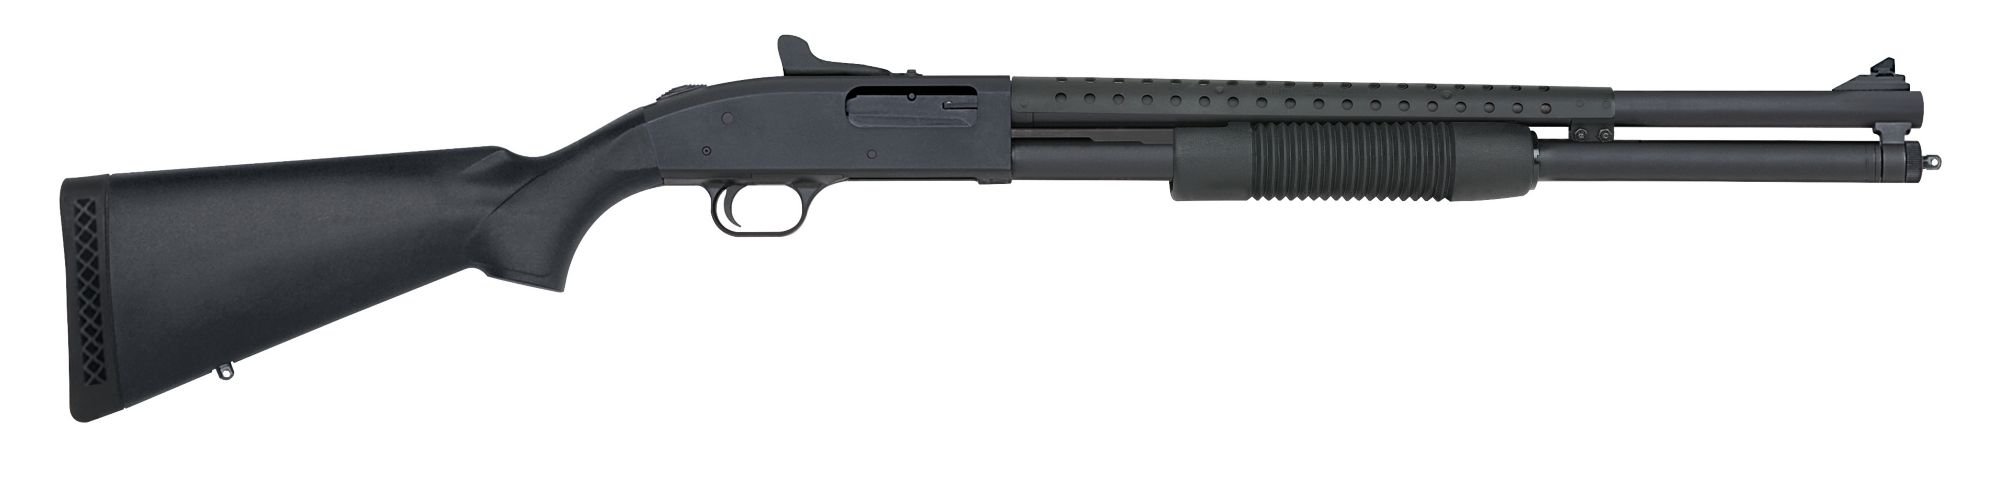 Mossberg 500 Tactical shotgun right profile